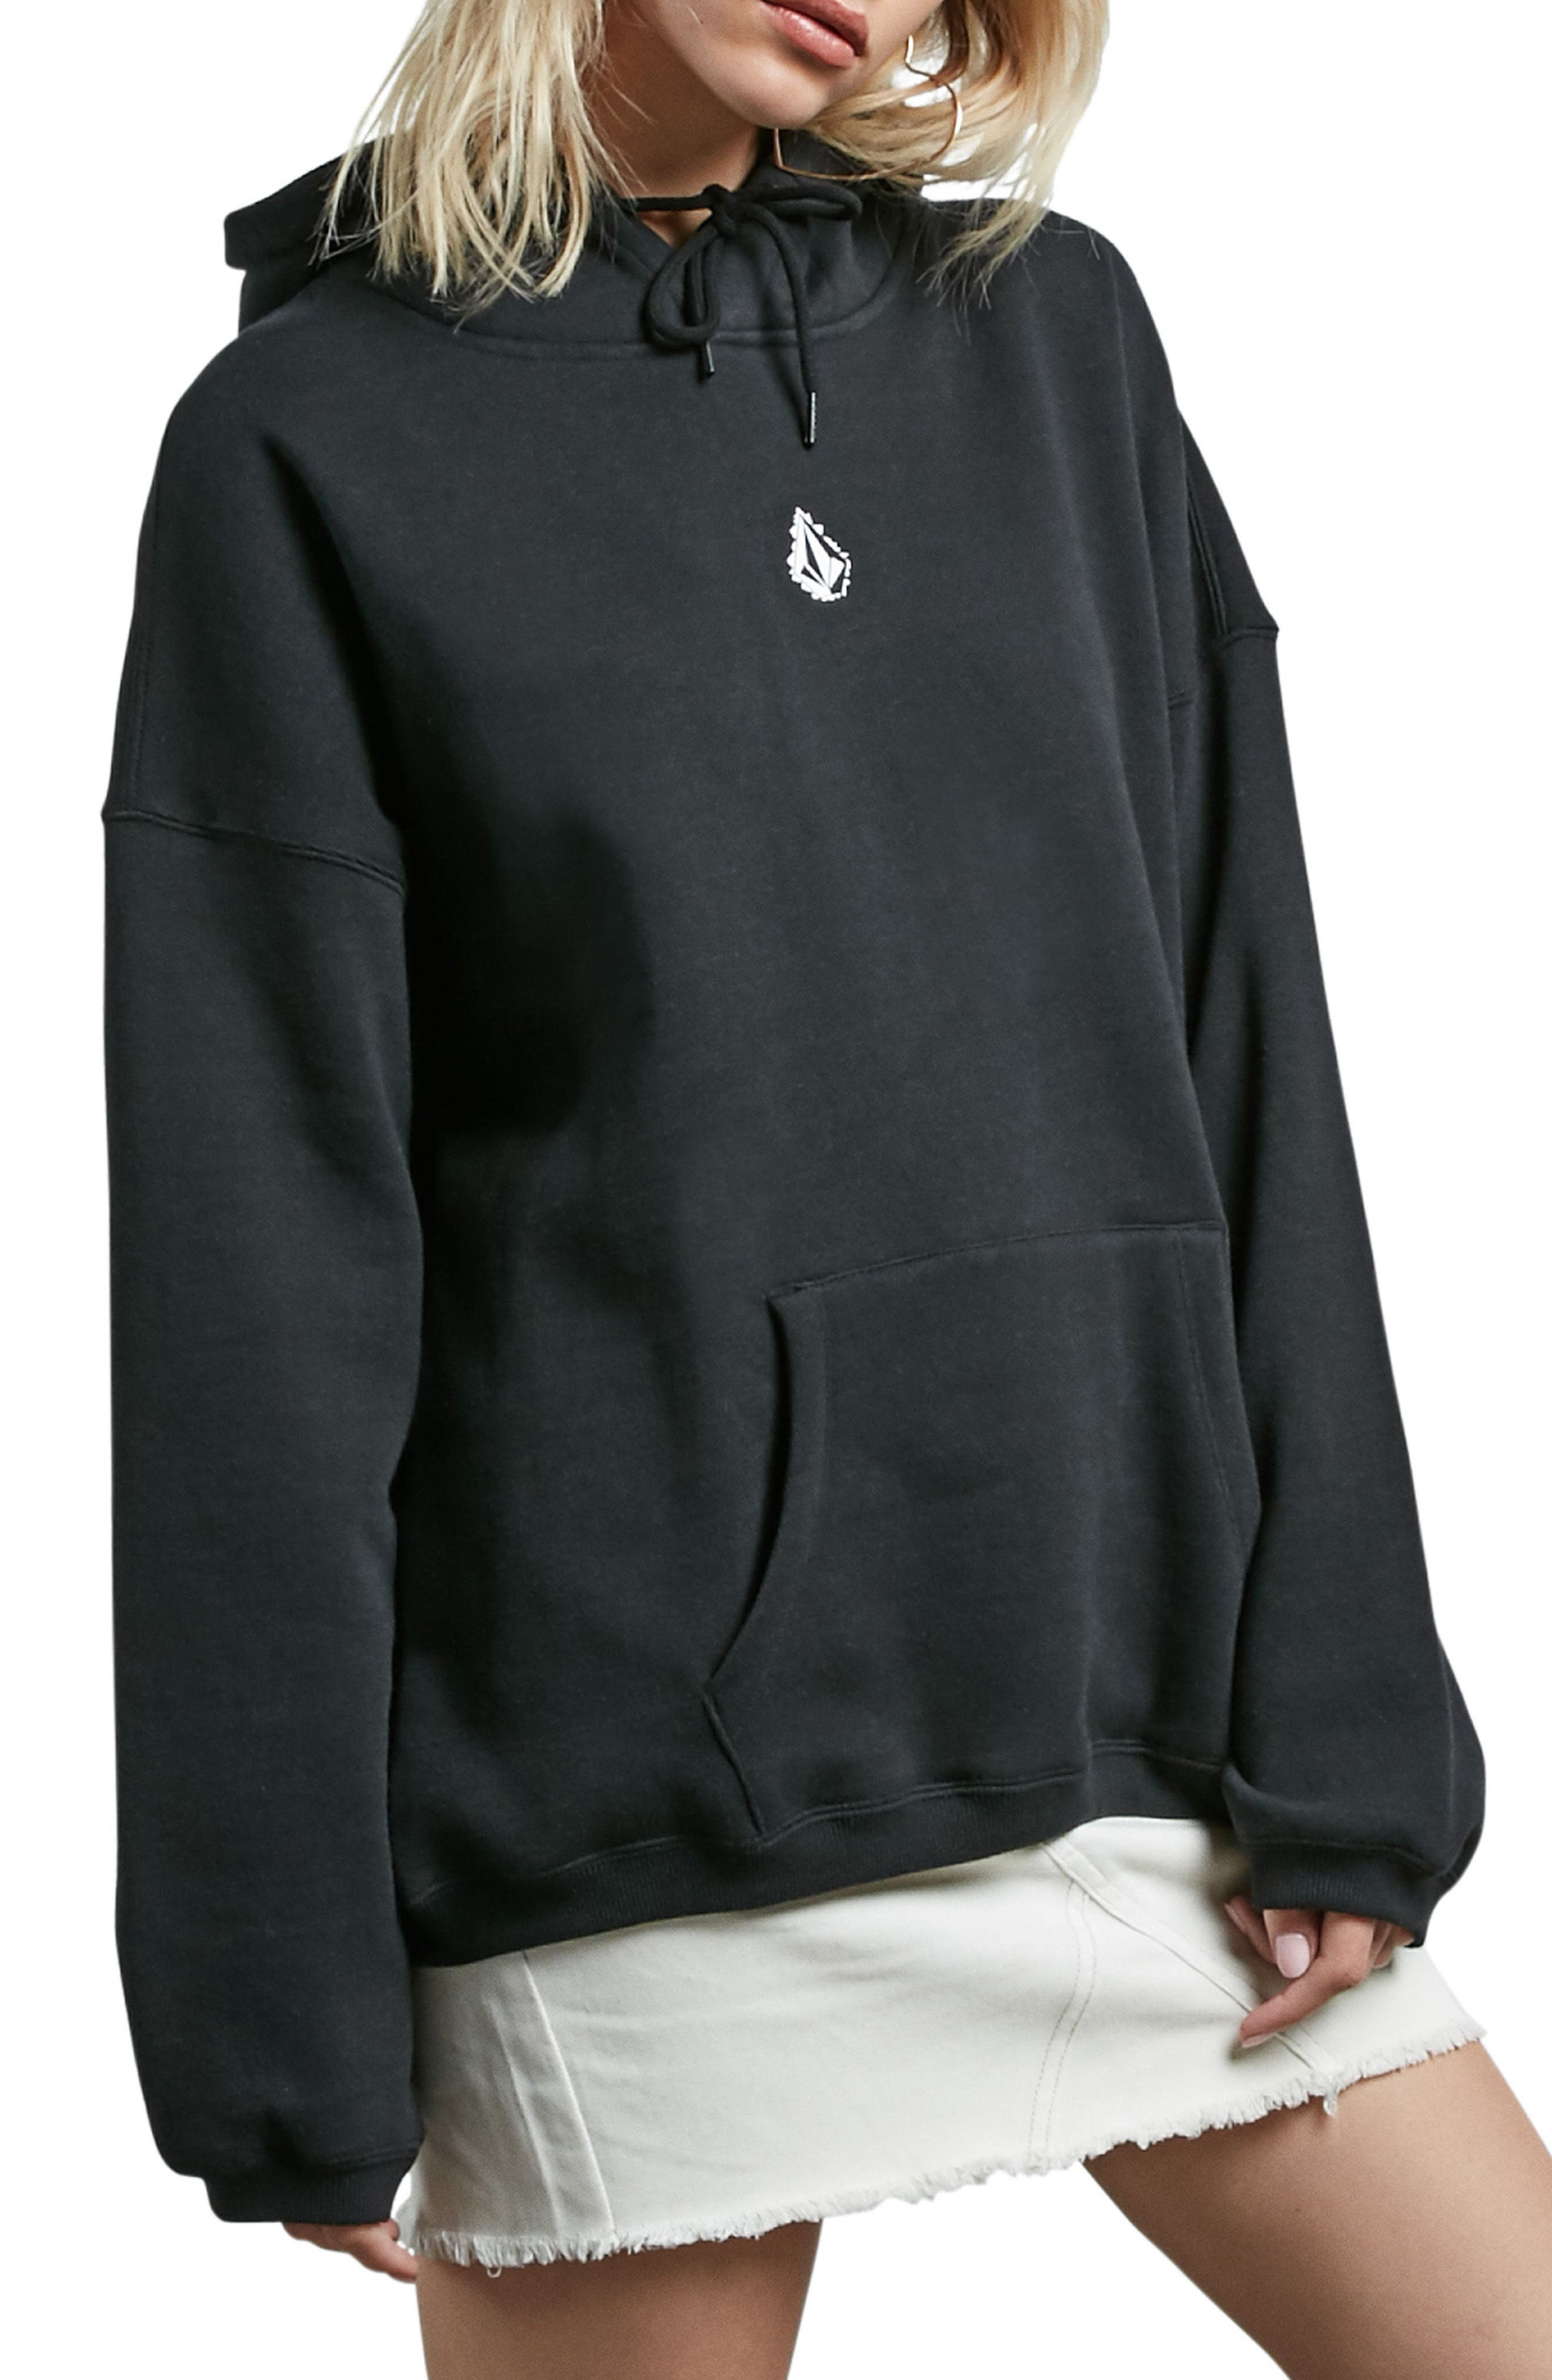 Roll It Up Hoodie,                         Main,                         color, 001